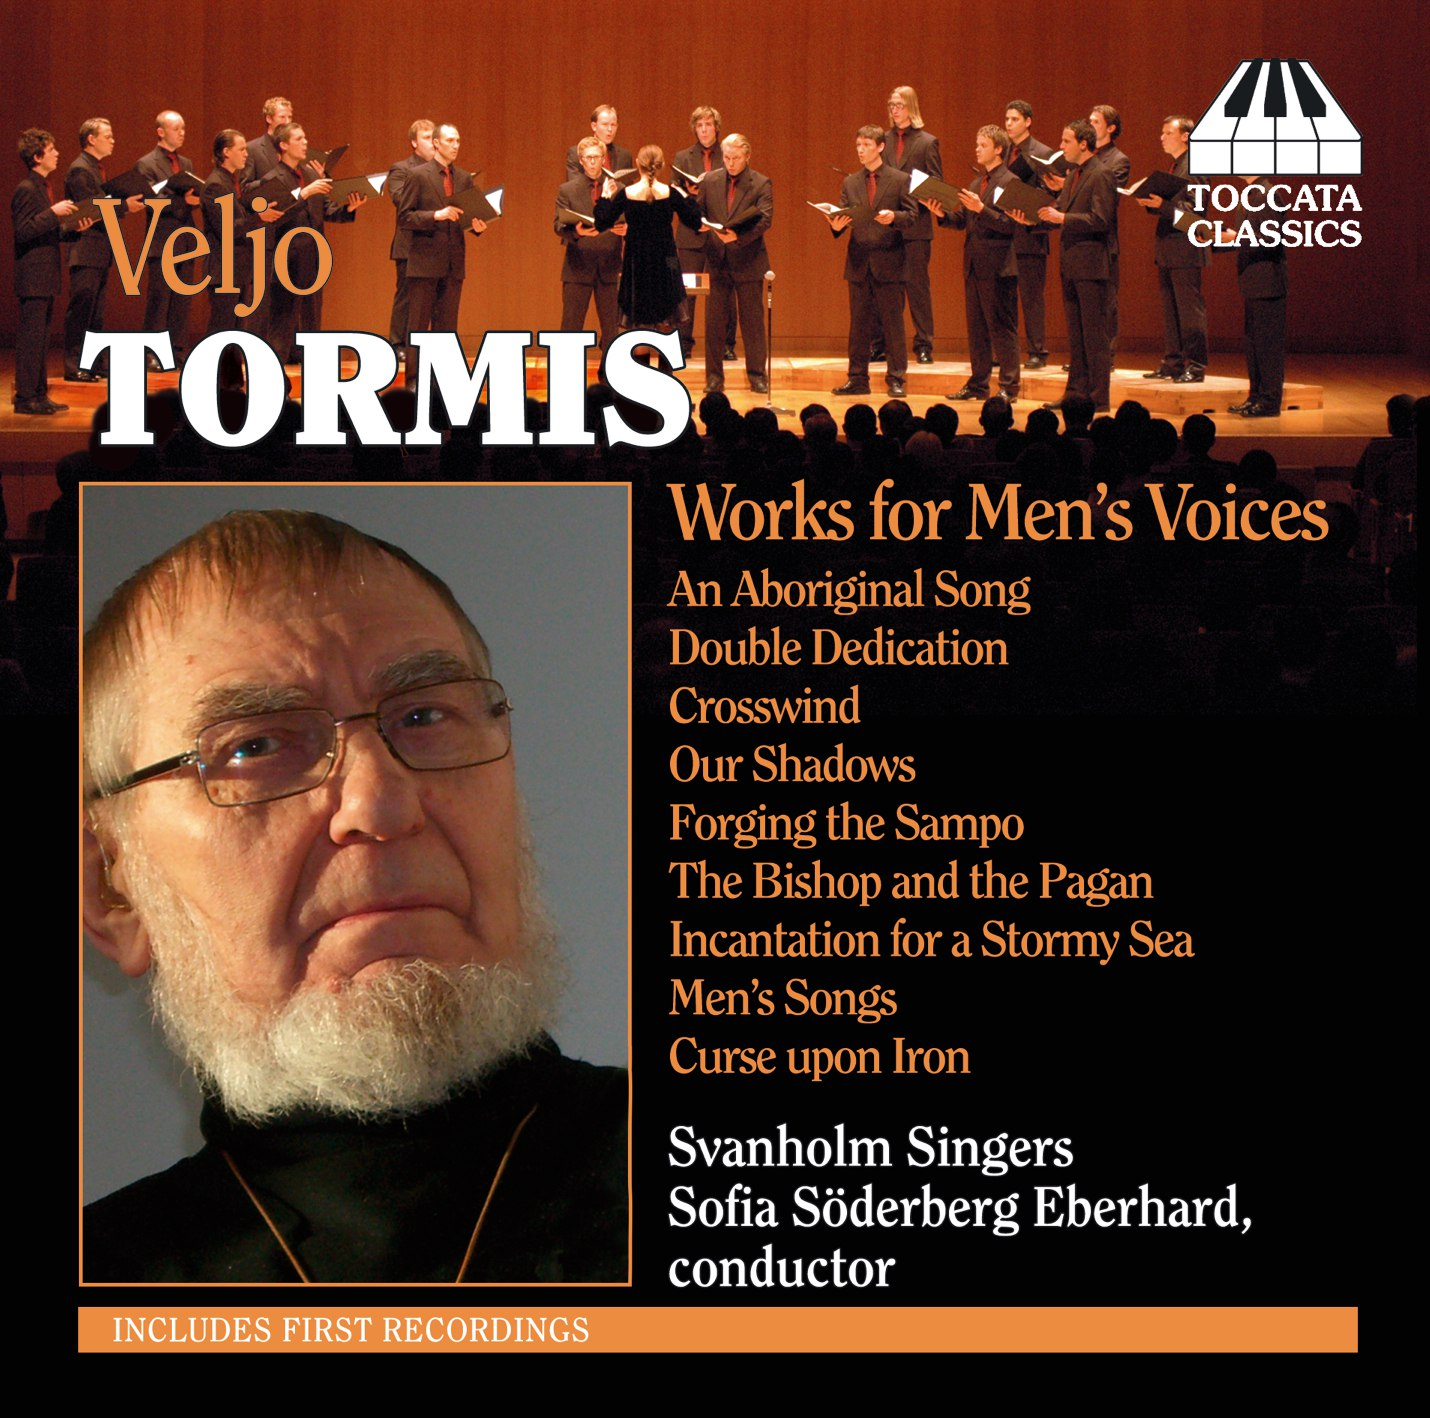 Veljo Tormis: Works for Men's Voices